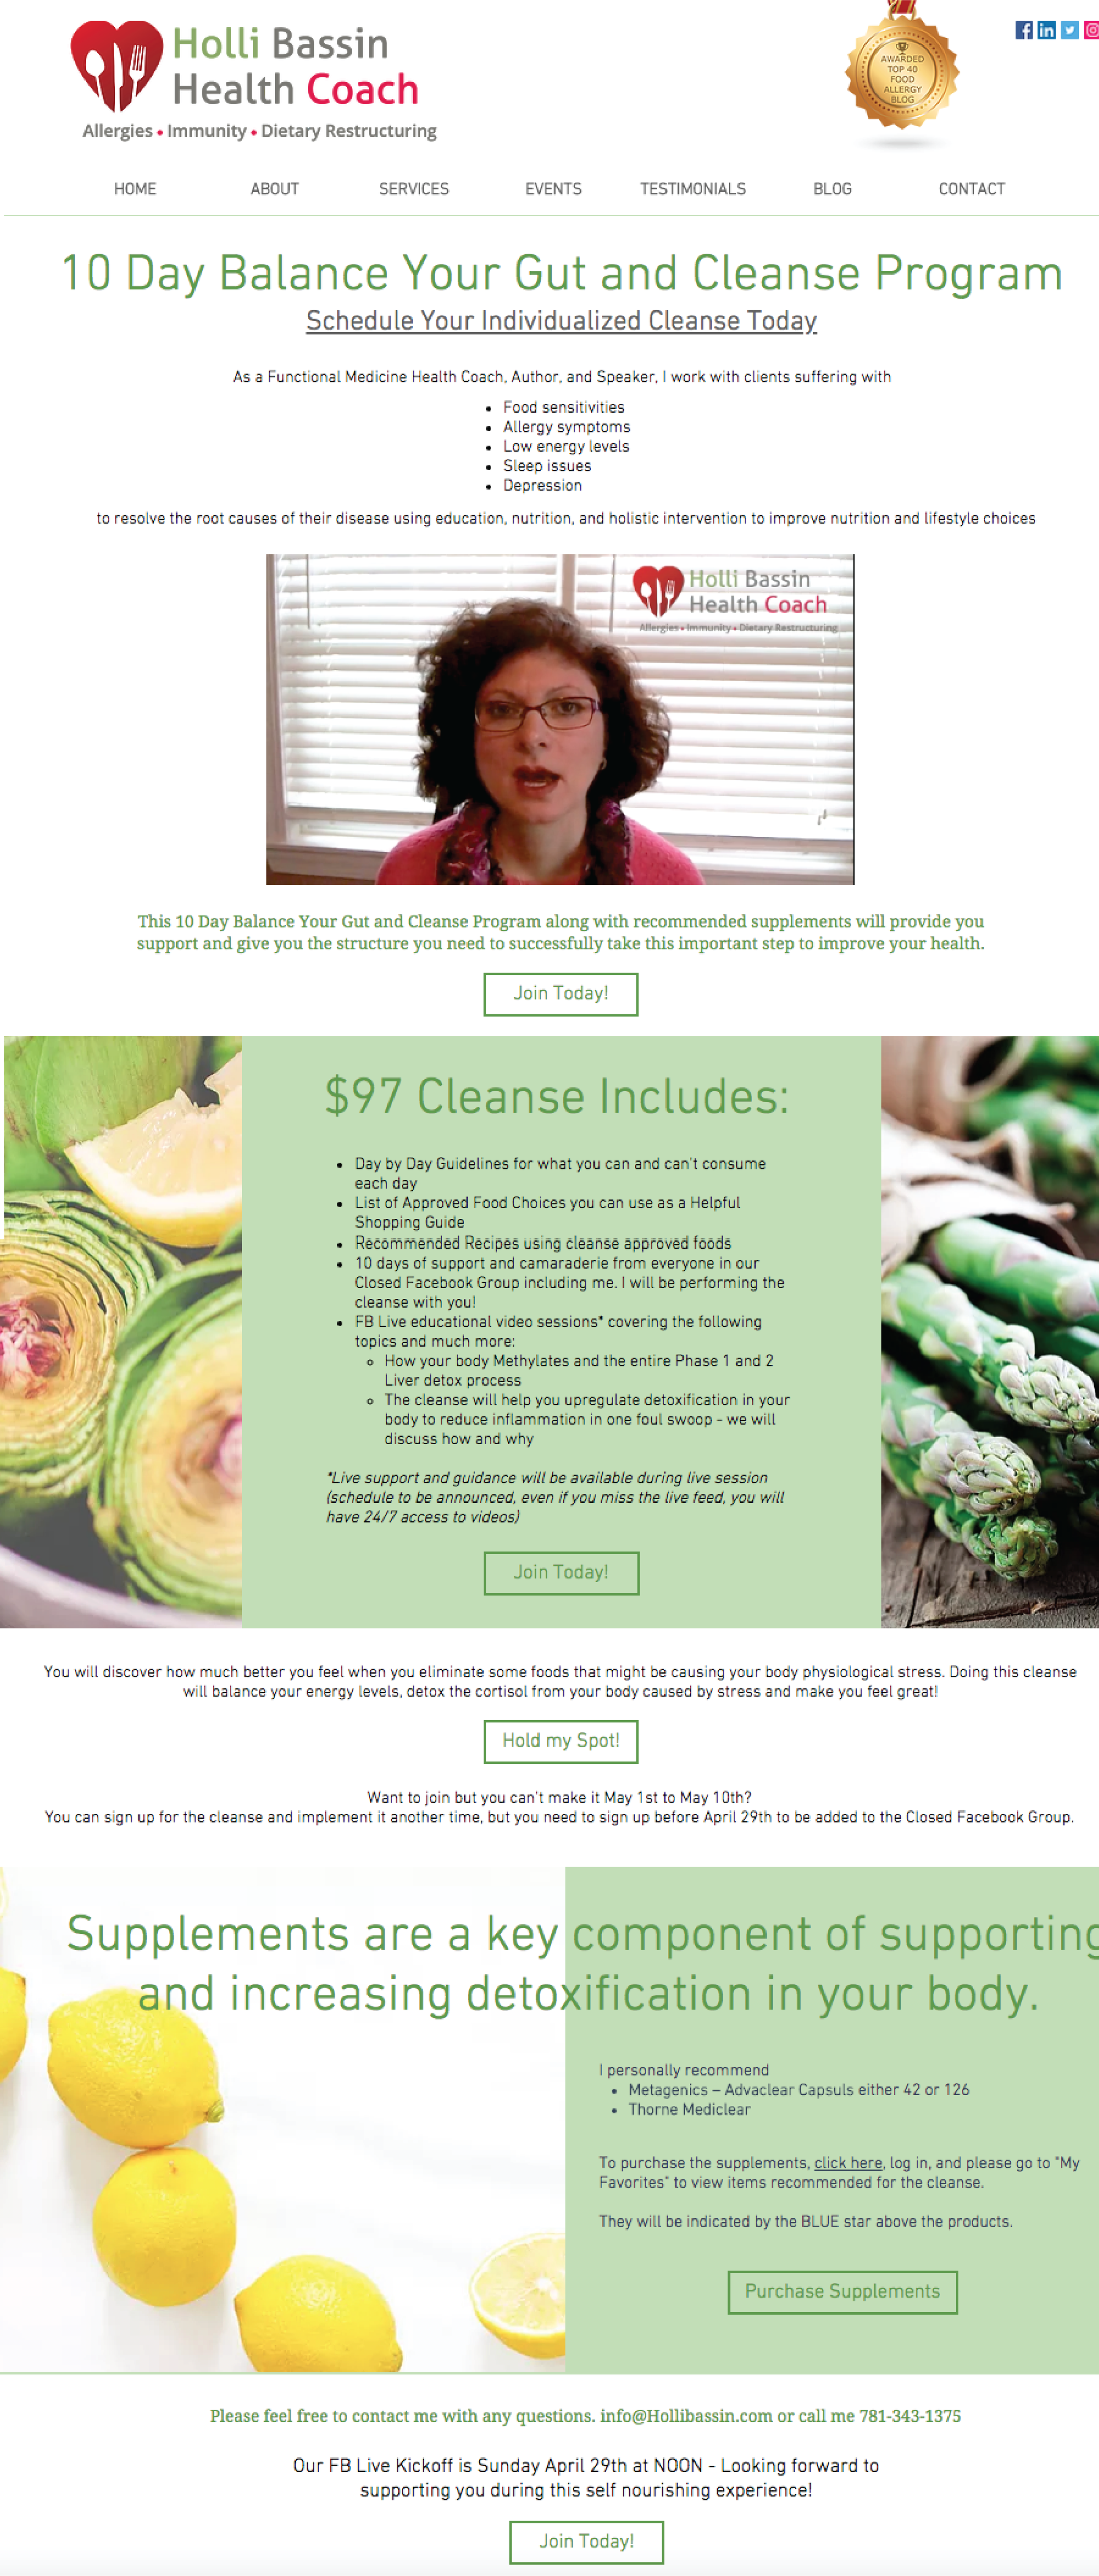 Web Page Design - Company: Hollin Bassin Health CoachProject: Design special page for website to promote 10 Day Balance your Gut and Cleanse Program. Edit video to brighten visual and include logo.Link to Site: https://www.hollibassin.com/cleanse